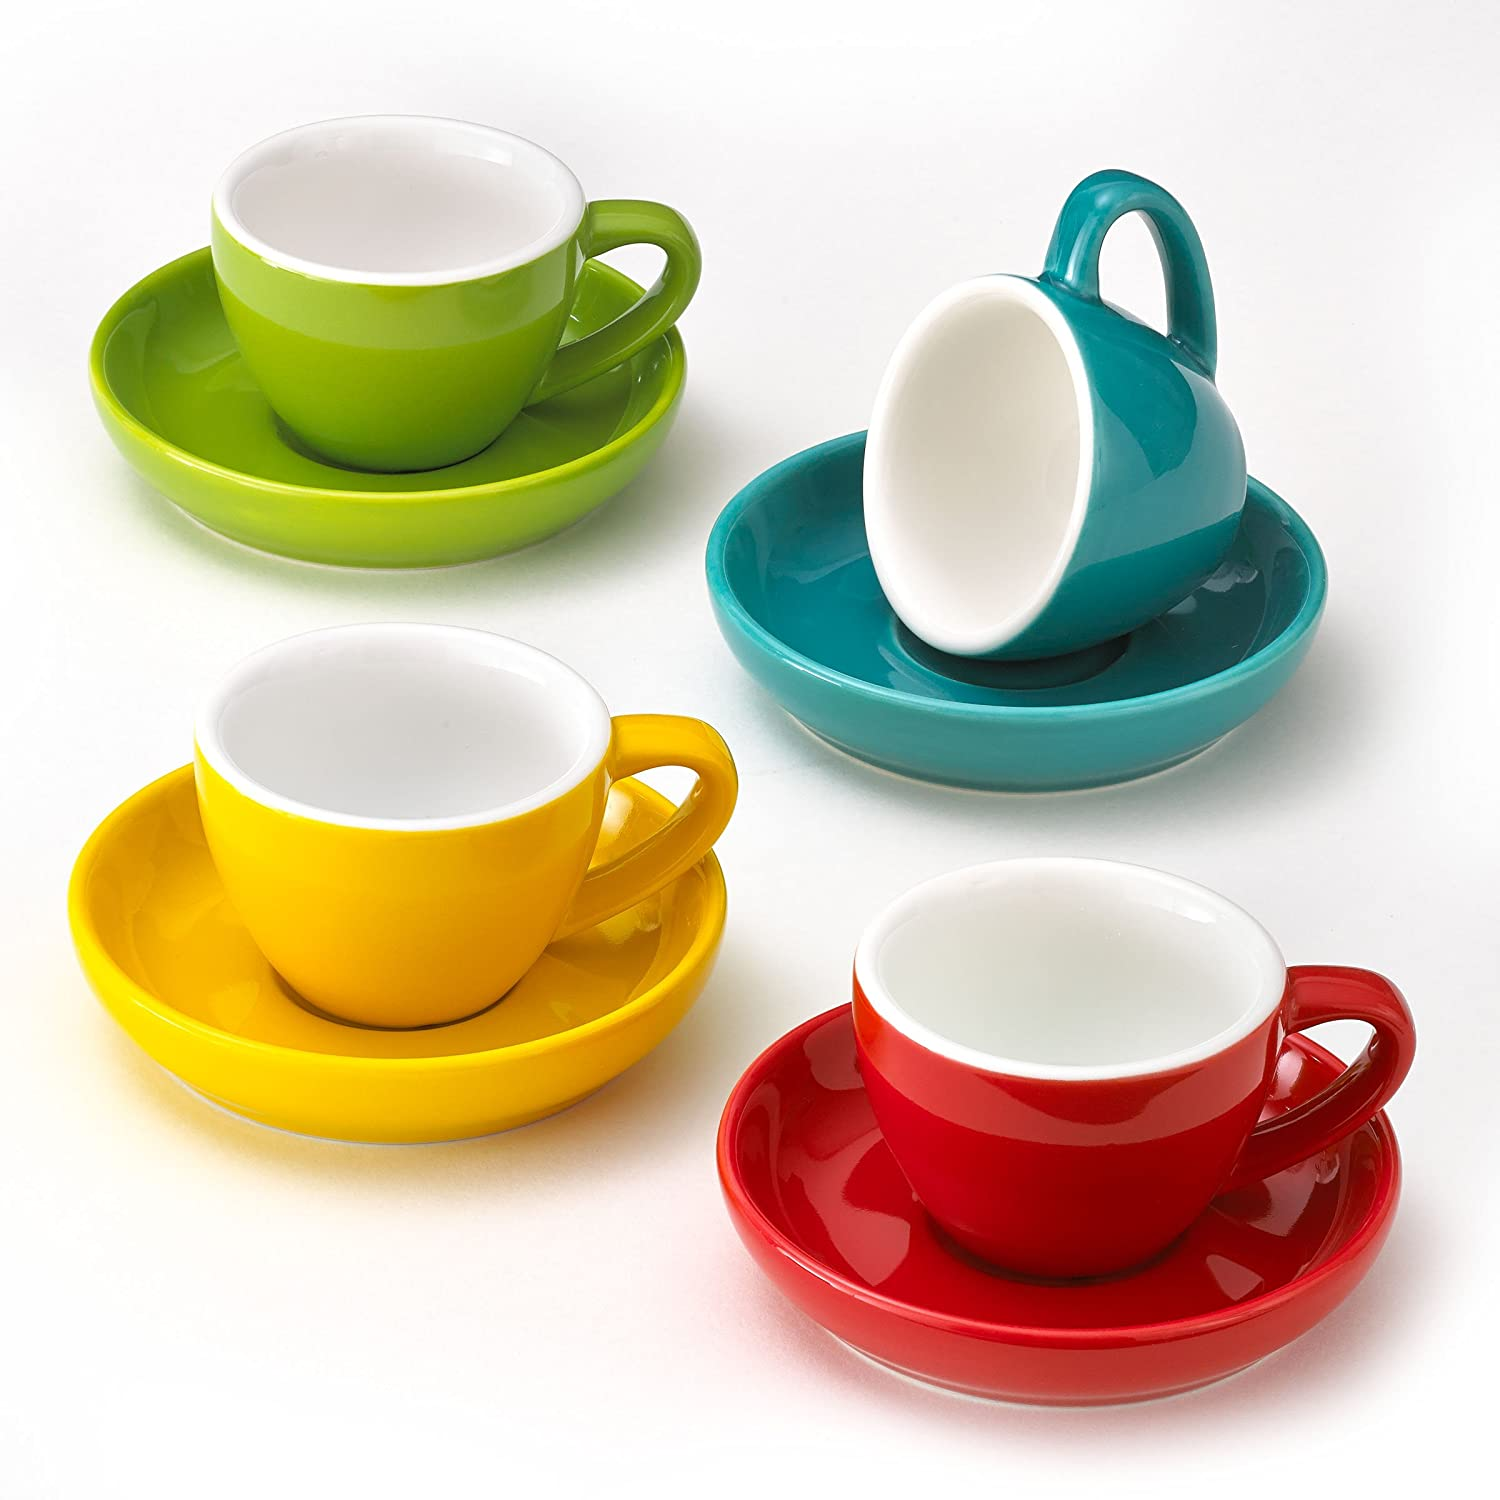 amazoncom  espresso cups and saucers set of  assorted vibrant  - amazoncom  espresso cups and saucers set of  assorted vibrant colorsounce demitasse for coffee durable porcelain espresso cups